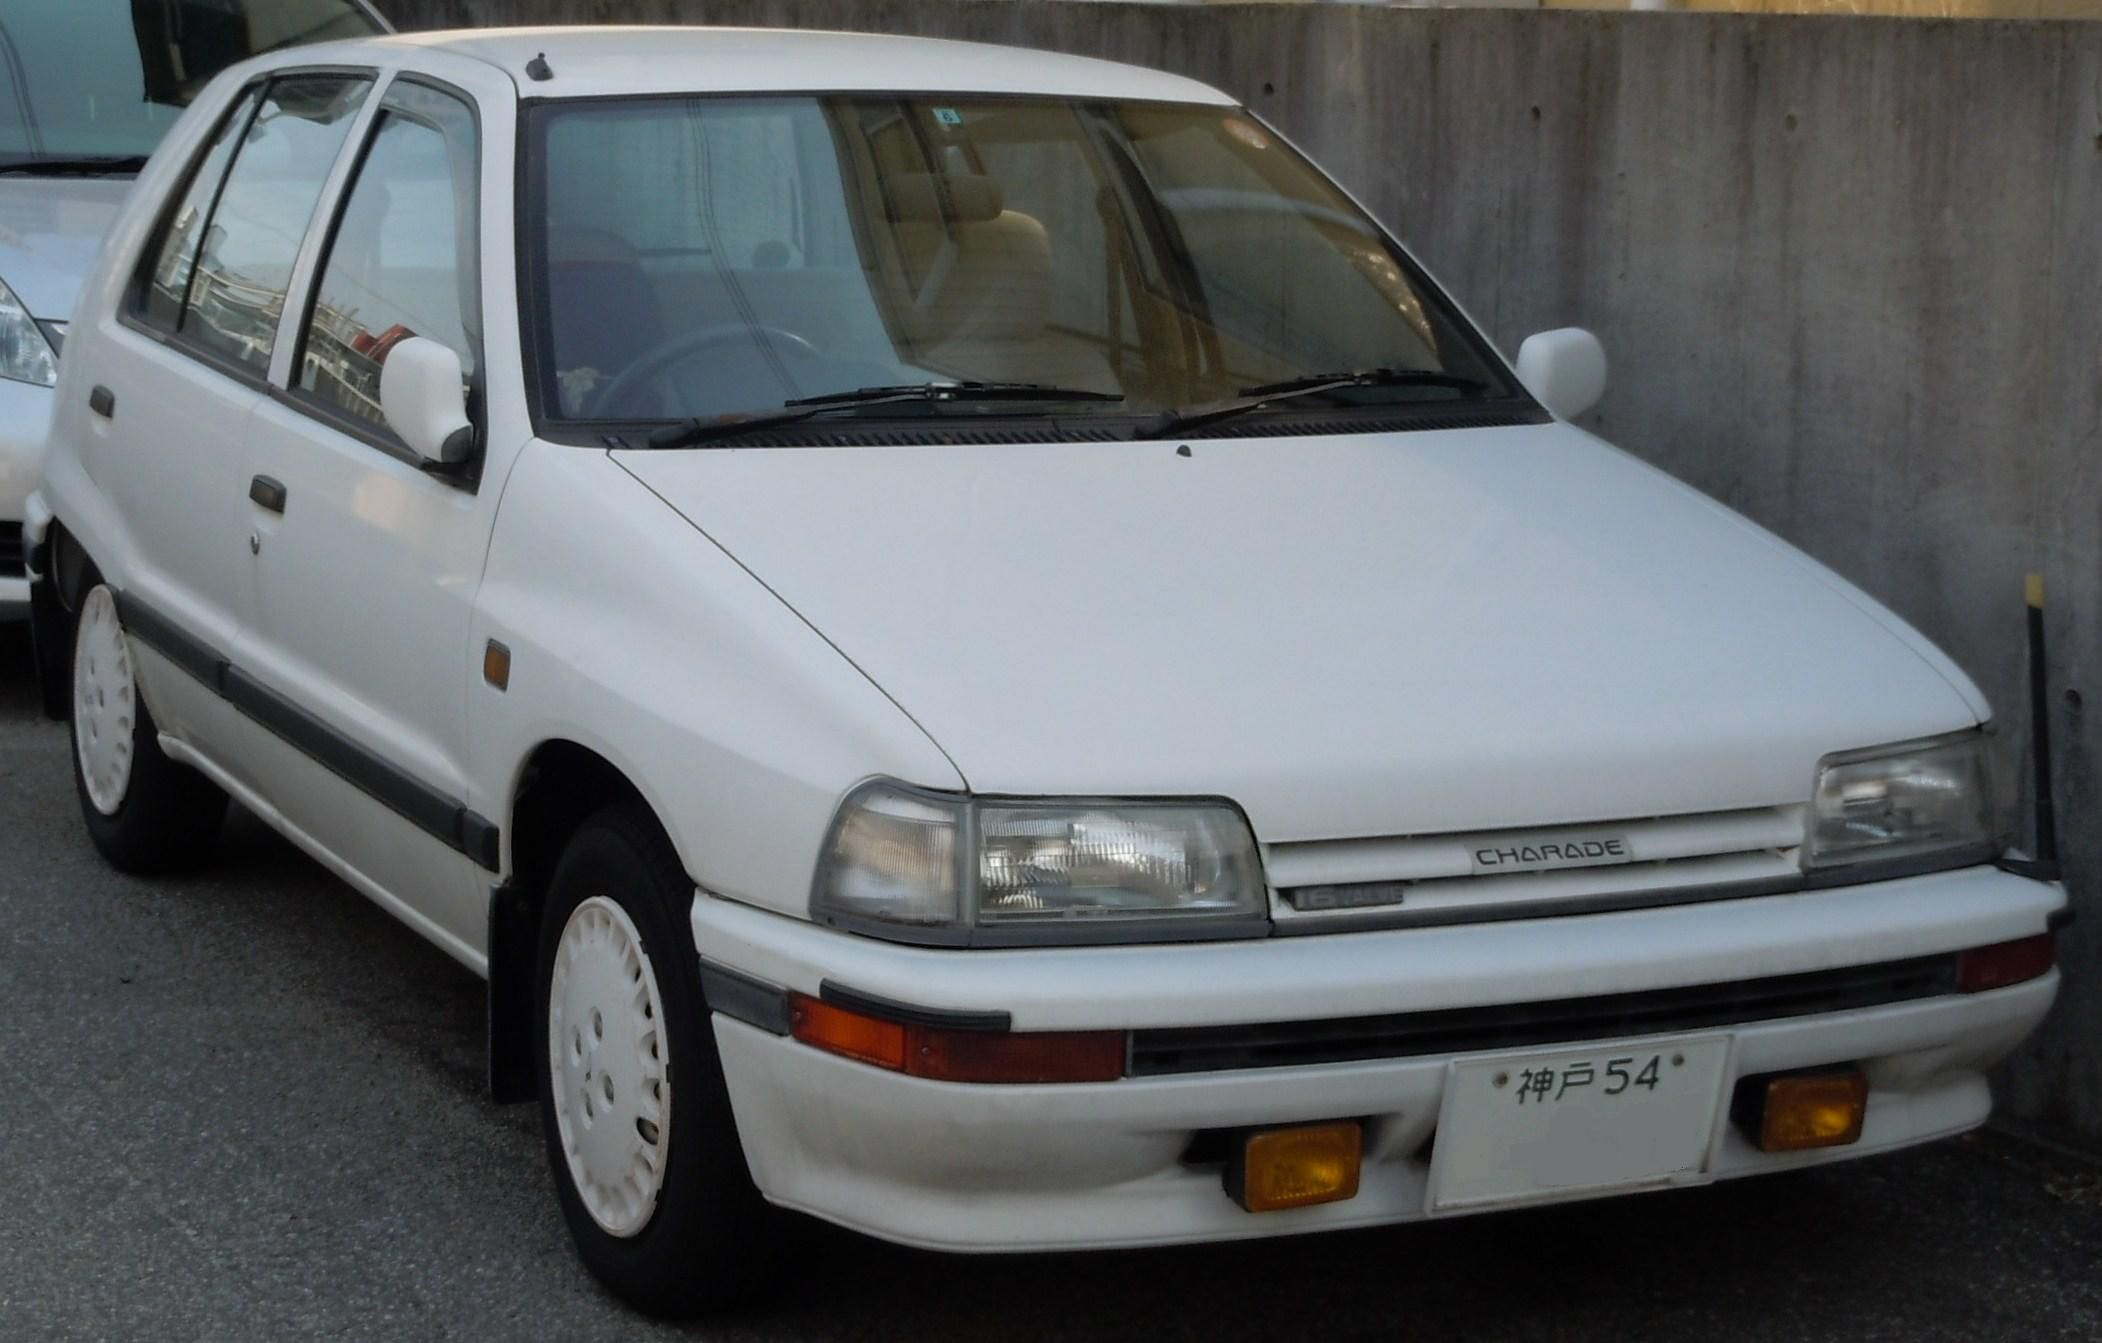 Daihatsu Charade, simple nice clean look Four Wheelers, Charades, Daihatsu,  Classic Cars